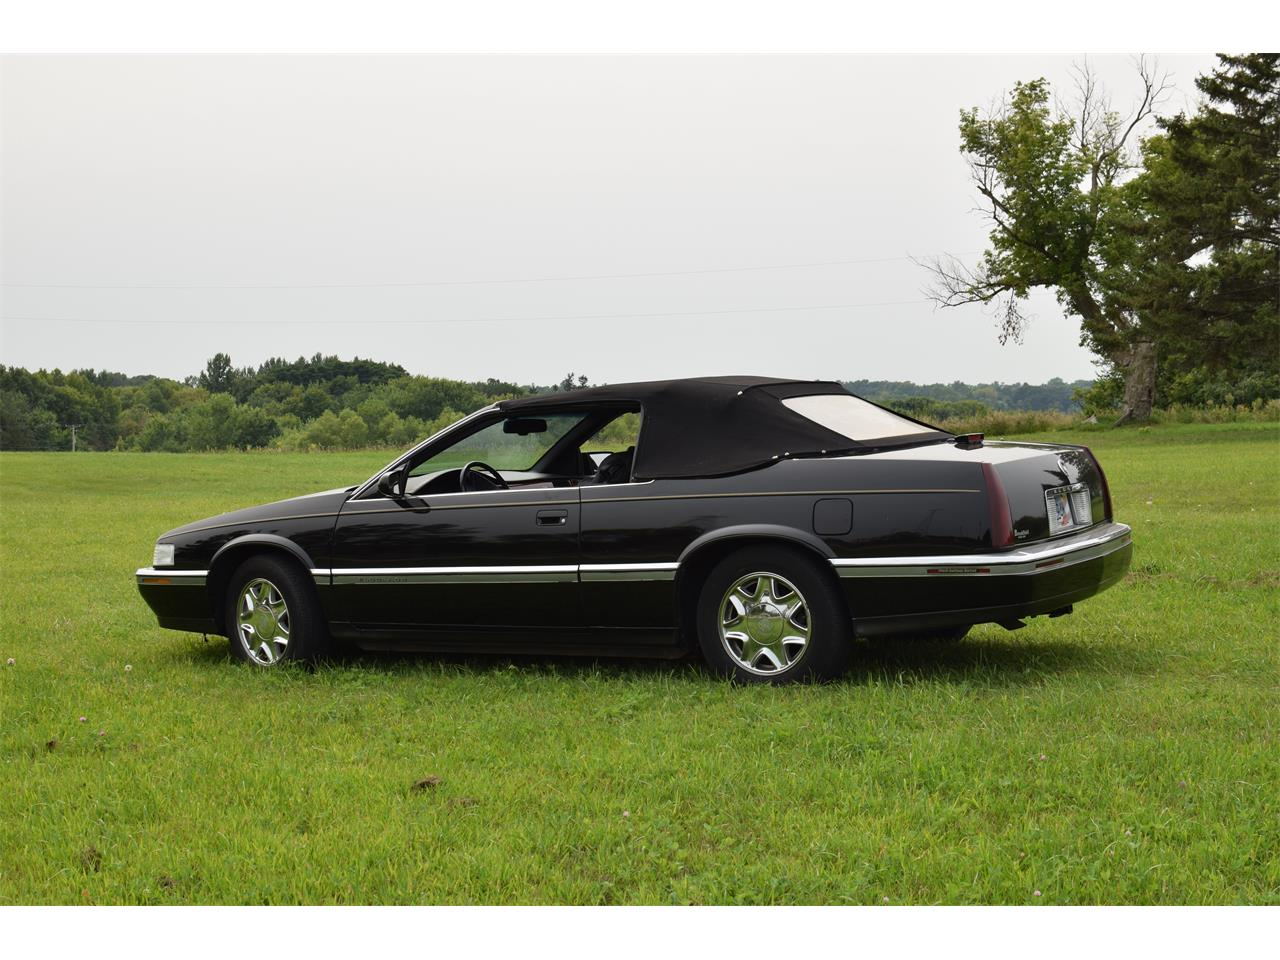 1992 cadillac eldorado for sale in watertown mn classiccarsbay com classiccarsbay